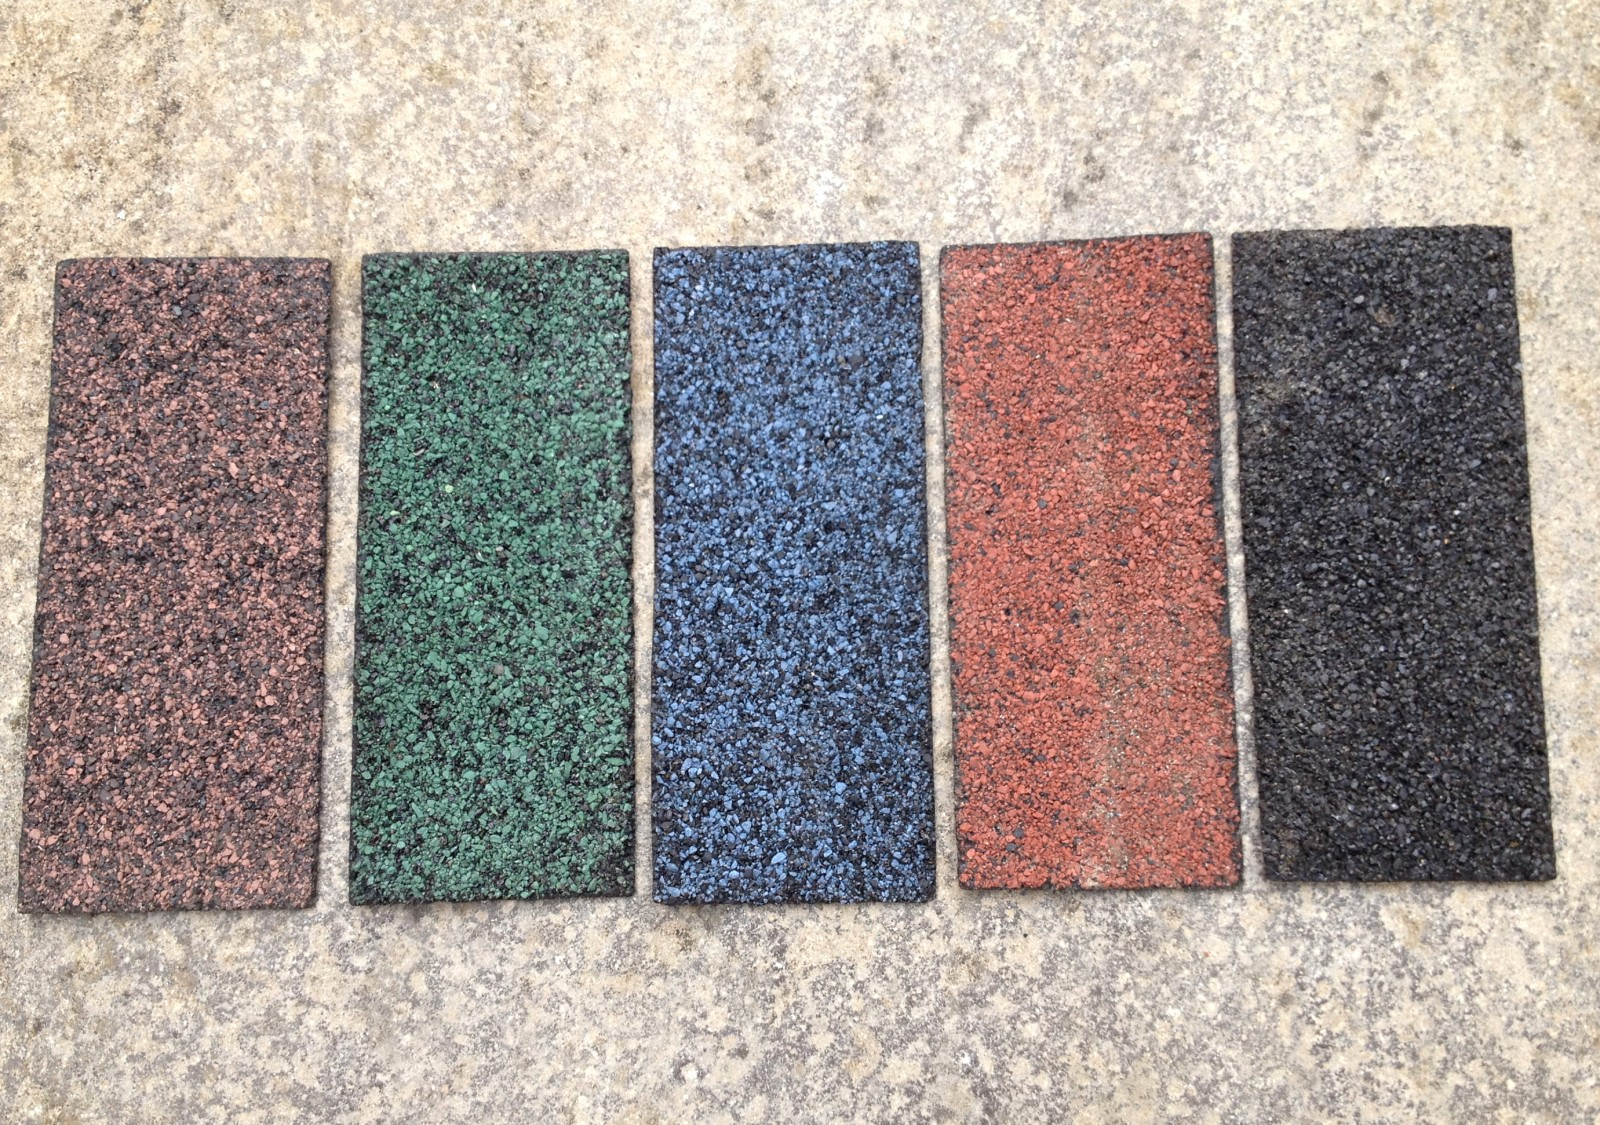 Top tips choosing roofing materials for your garden building for Roofing material options